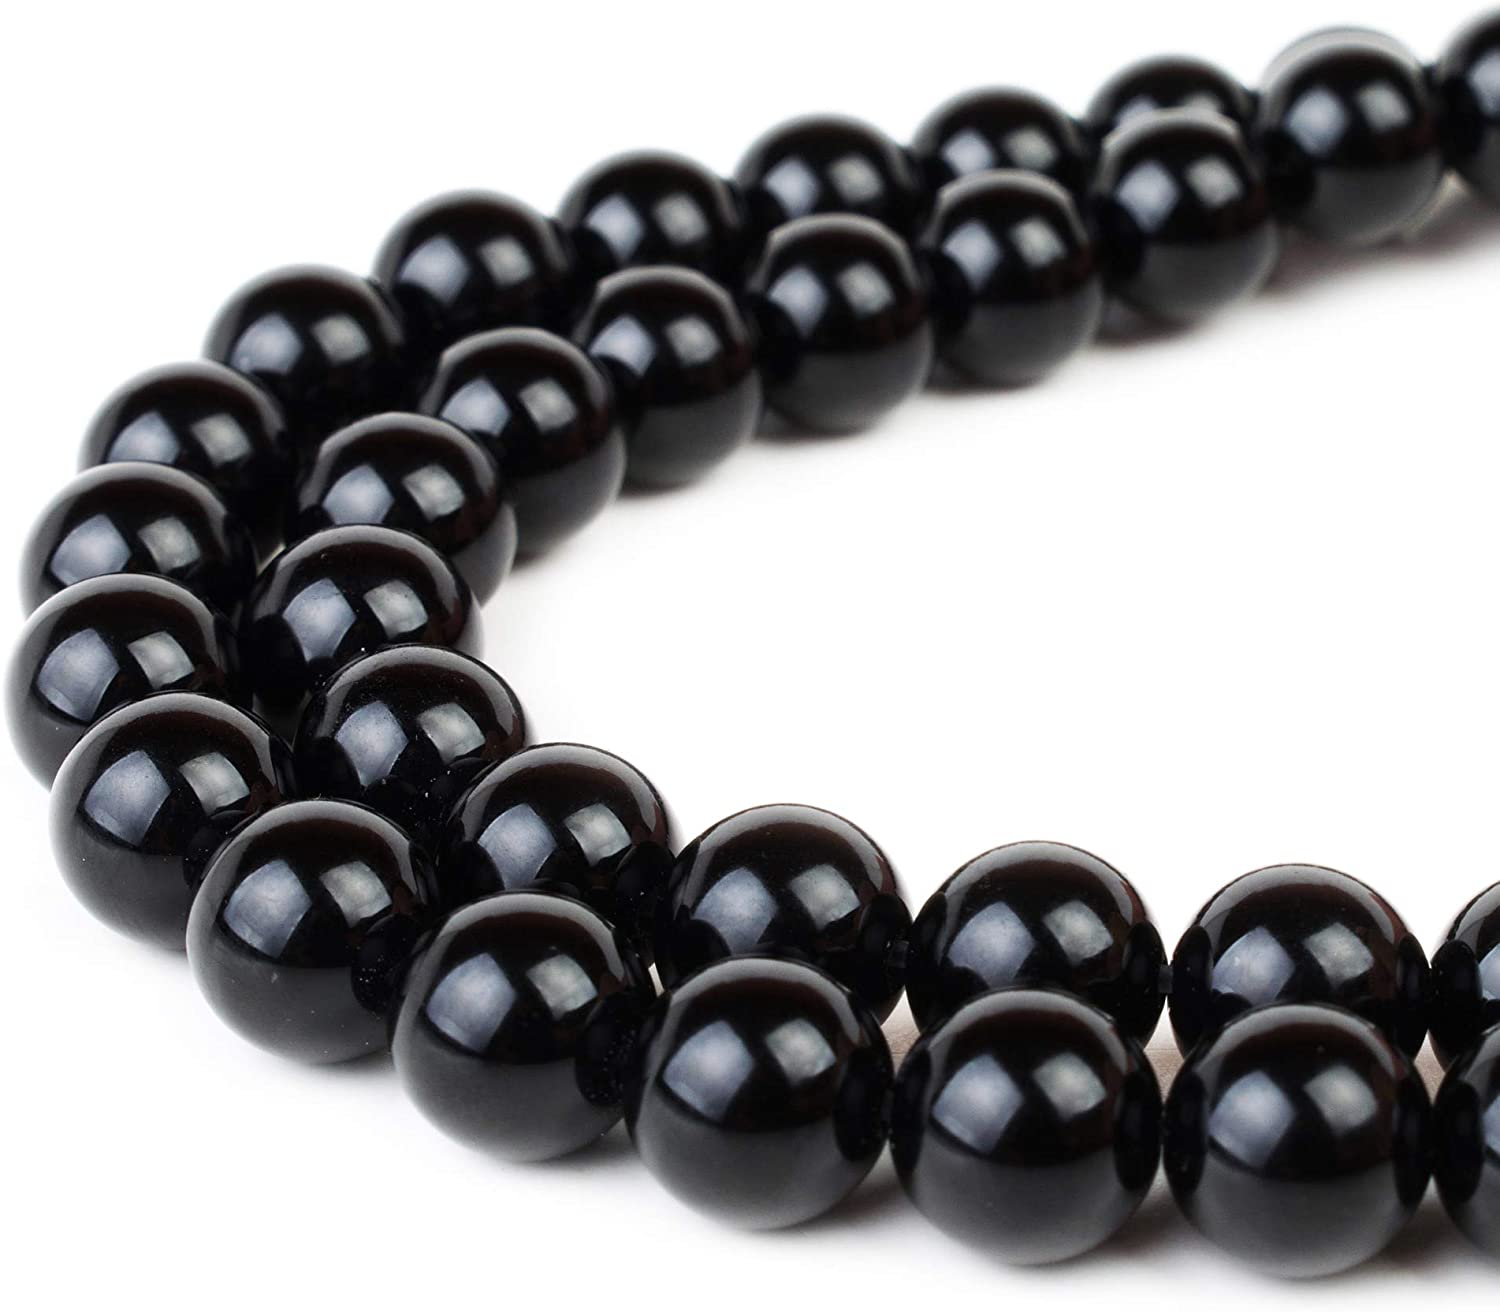 12 mm Genuine Natural Black Agate Onyx Gemstone Round Beads Stretch Bracelets